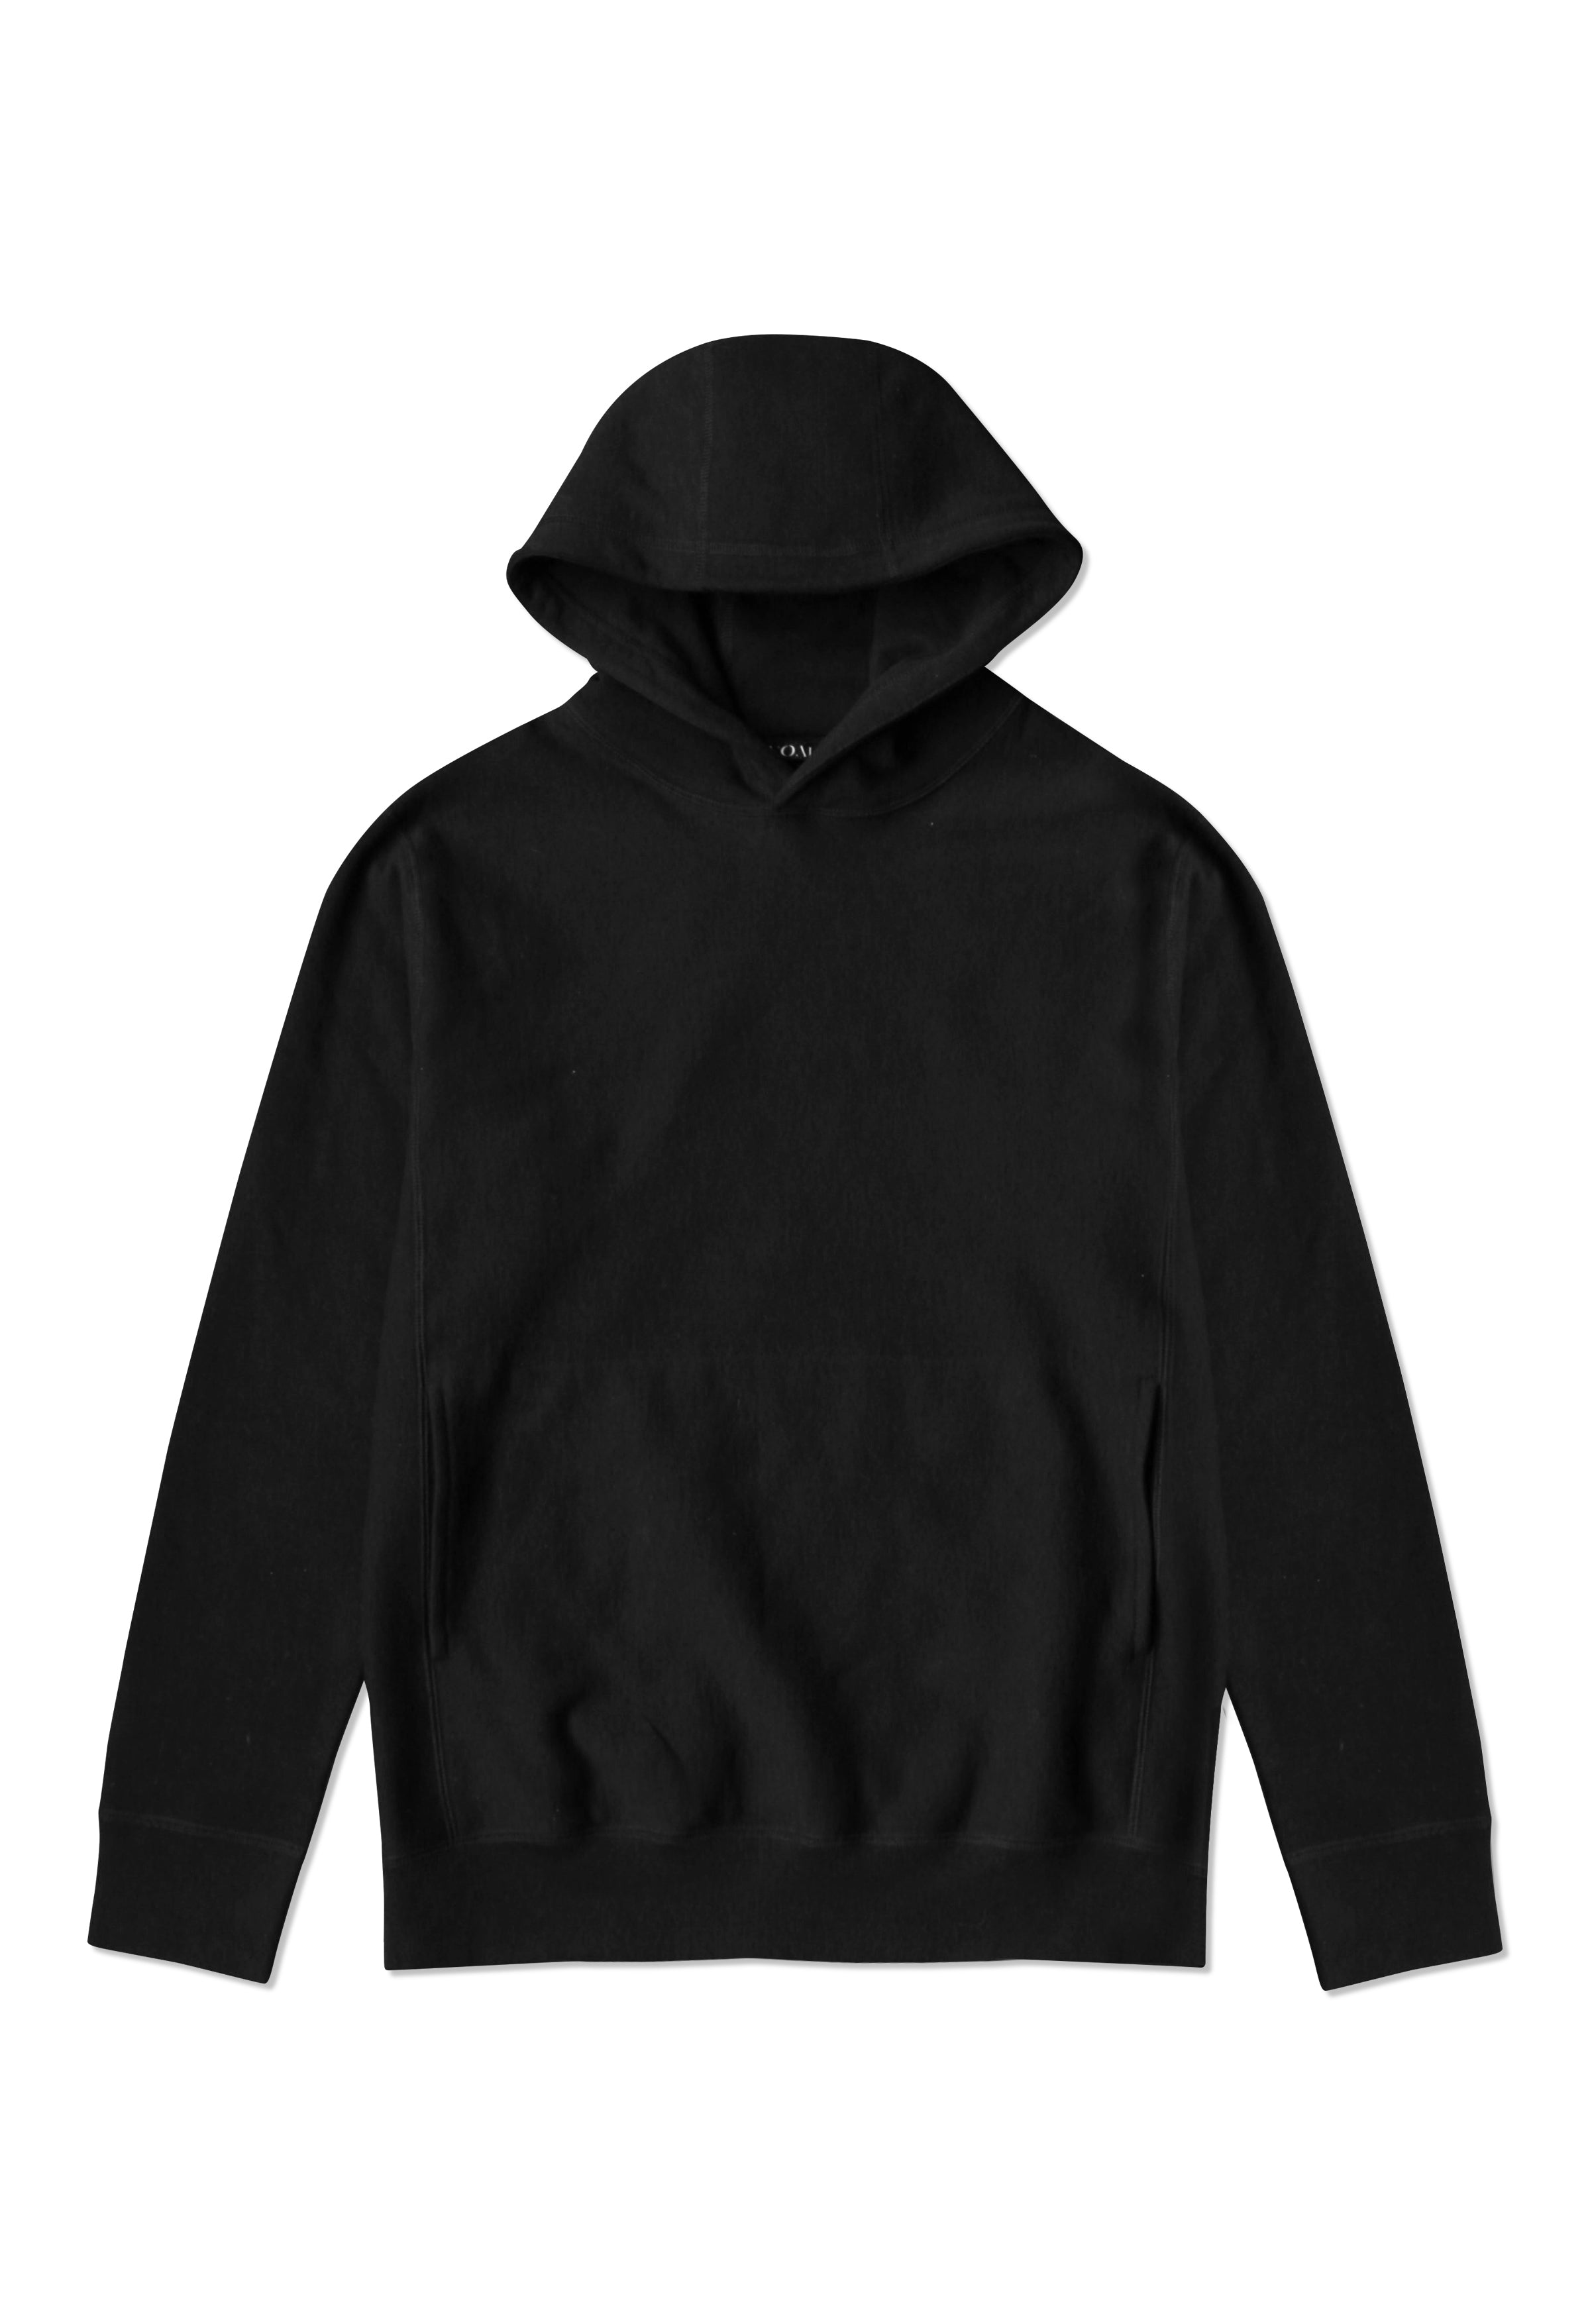 VOAK M'S HOODIES CONFERENCE PULLOVER HOOD